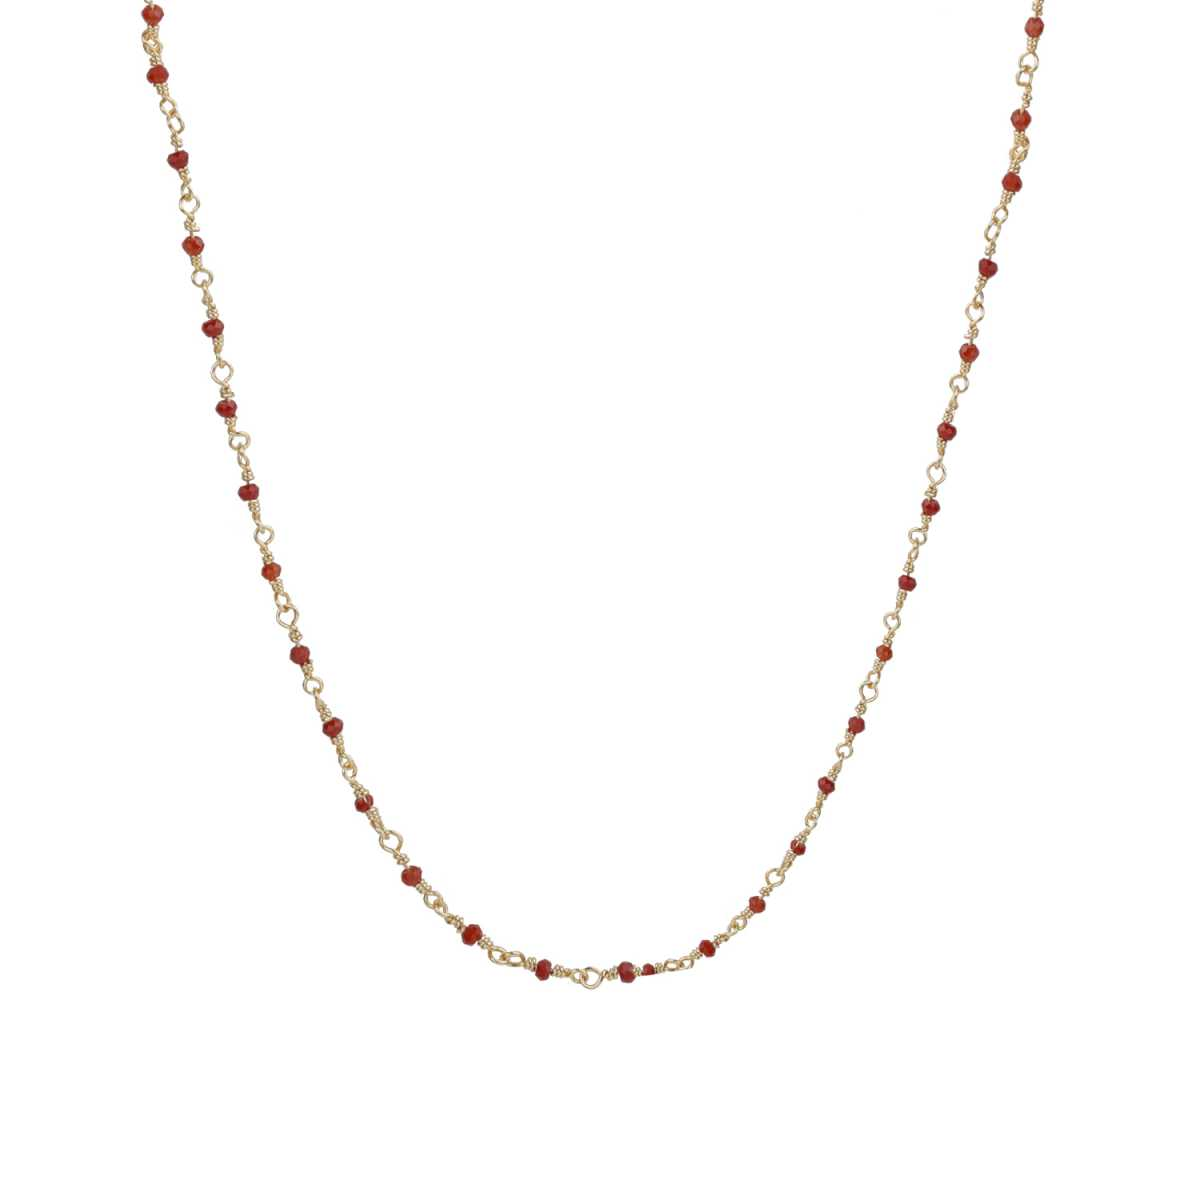 Graceful Gold 18 Inch Chain With Red Beads For Girls And Women Jewellery